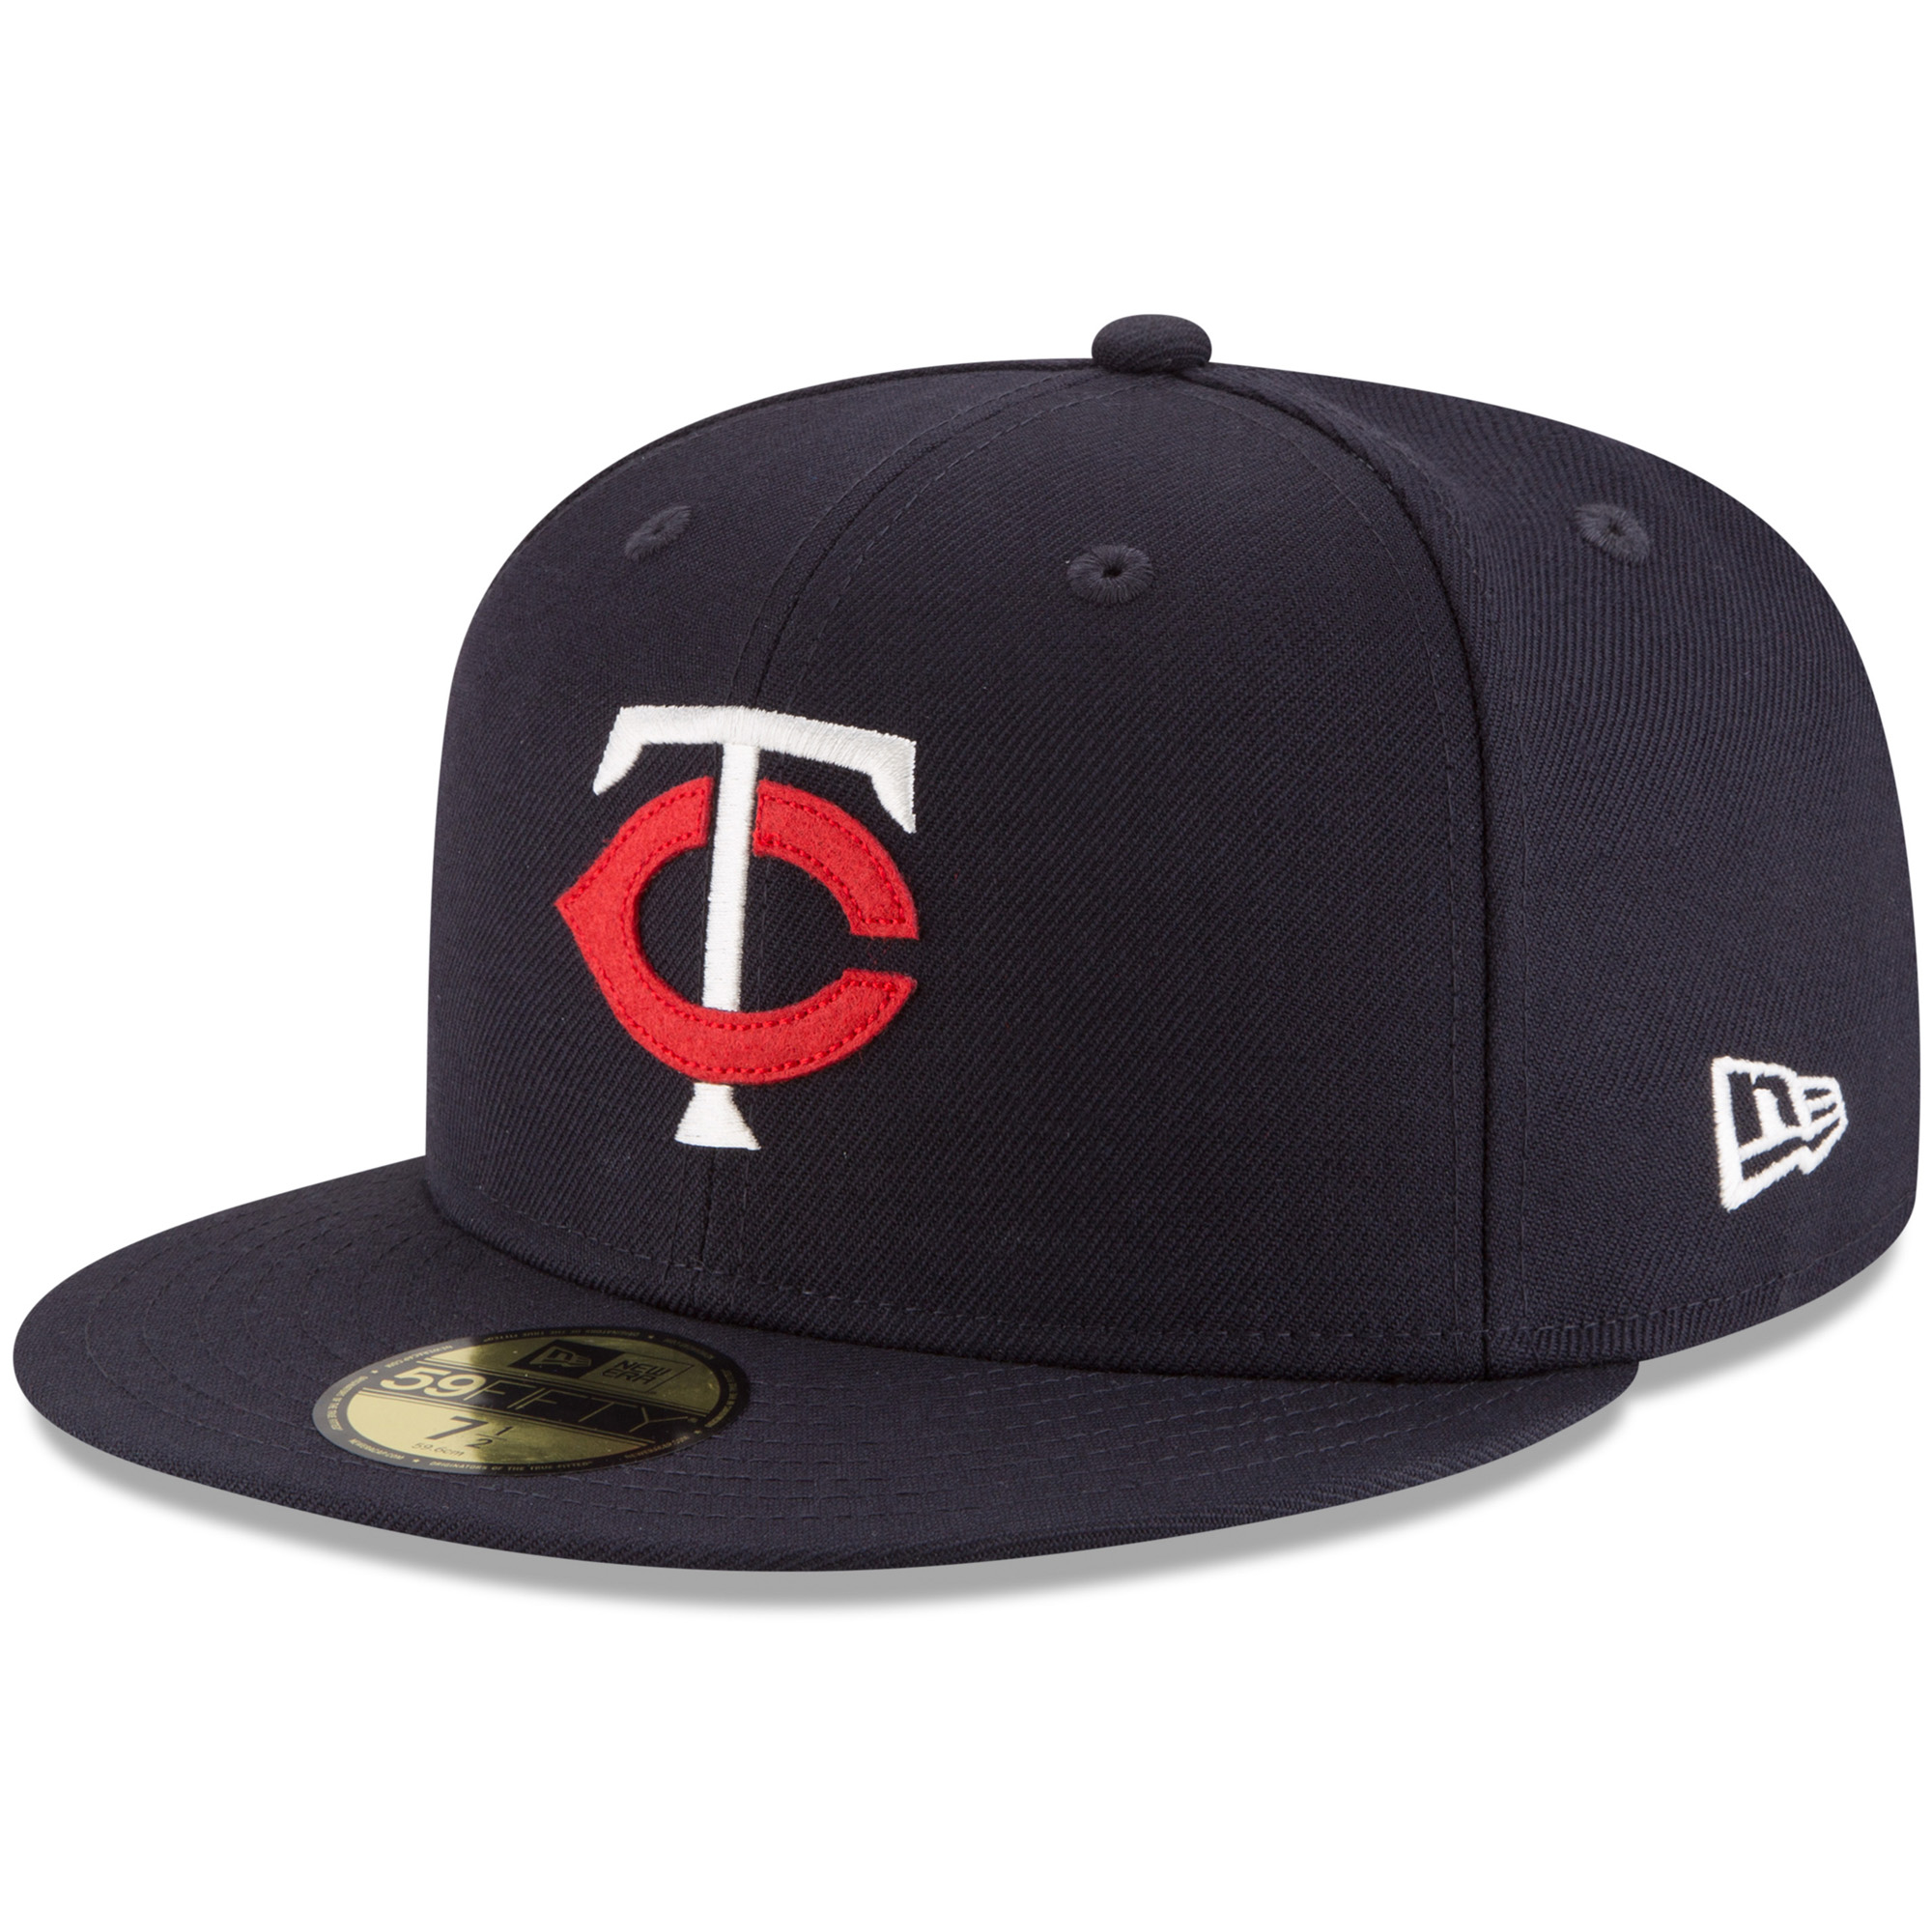 info for be494 99ee5 ... zealand colt 45s cooperstown mlb hats b85c0 4173b reduced minnesota  twins new era cooperstown inaugural season 59fifty fitted hat navy walmart  d31ba ...